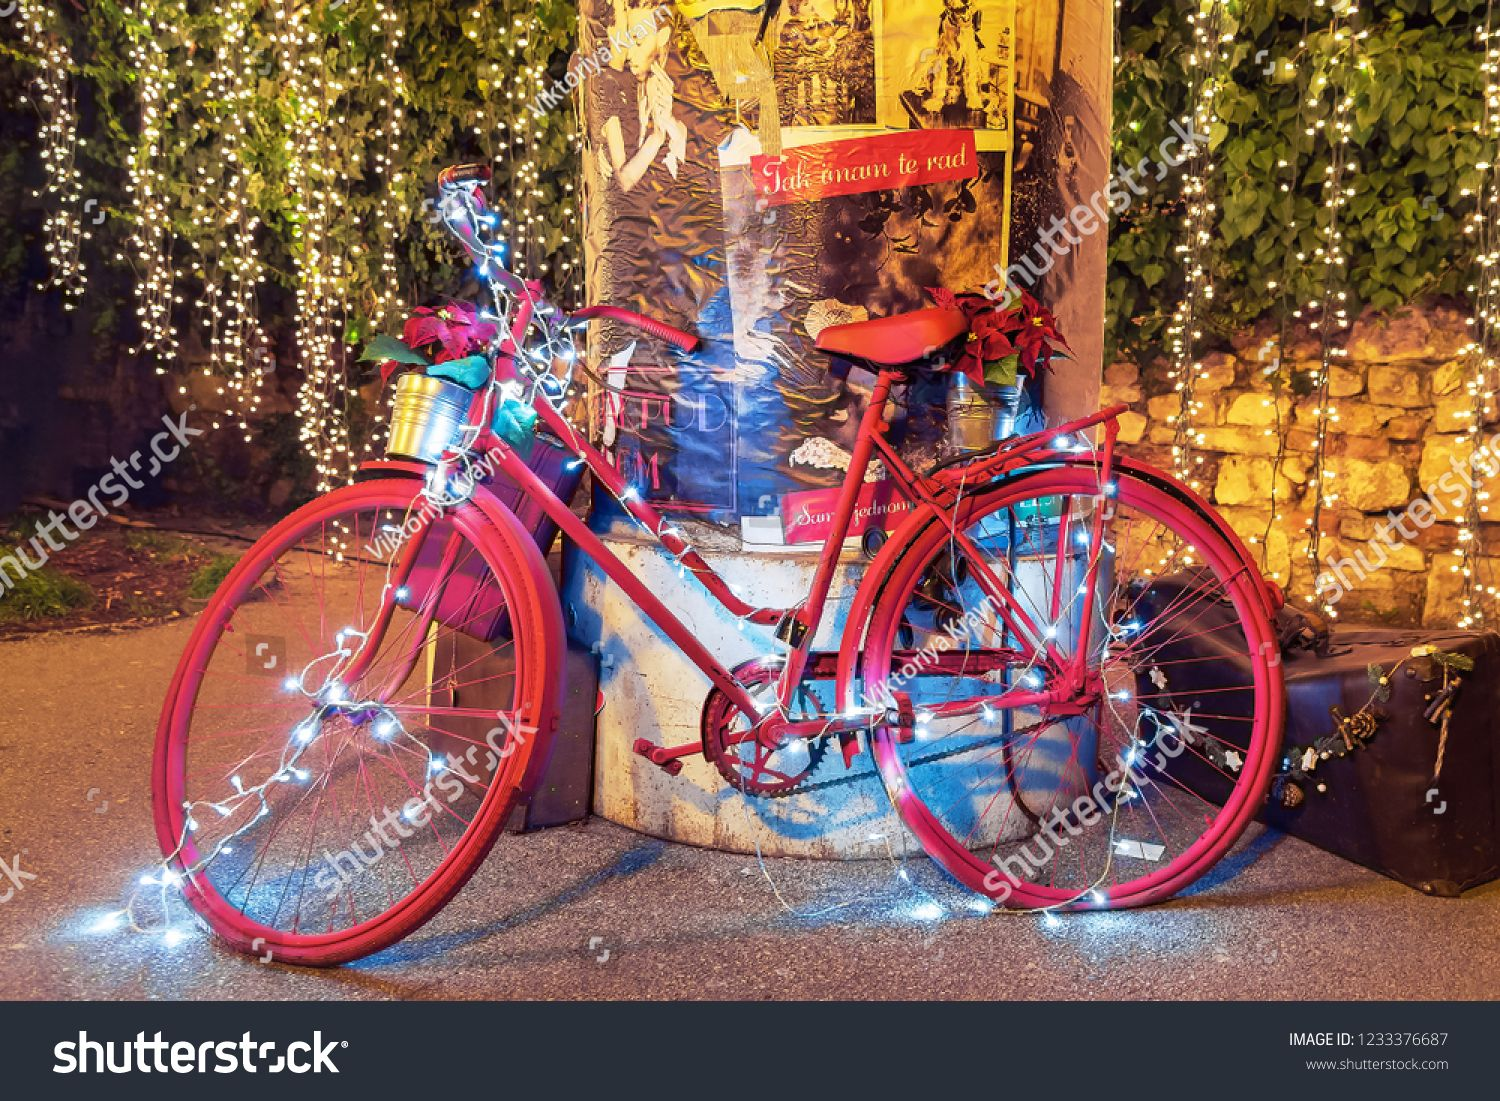 Zagreb U002f Croatia 26 December 2017 Bicycle Decorated With Christmas Lights On The St In 2020 Christmas Lights Decorating With Christmas Lights Vintage Christmas